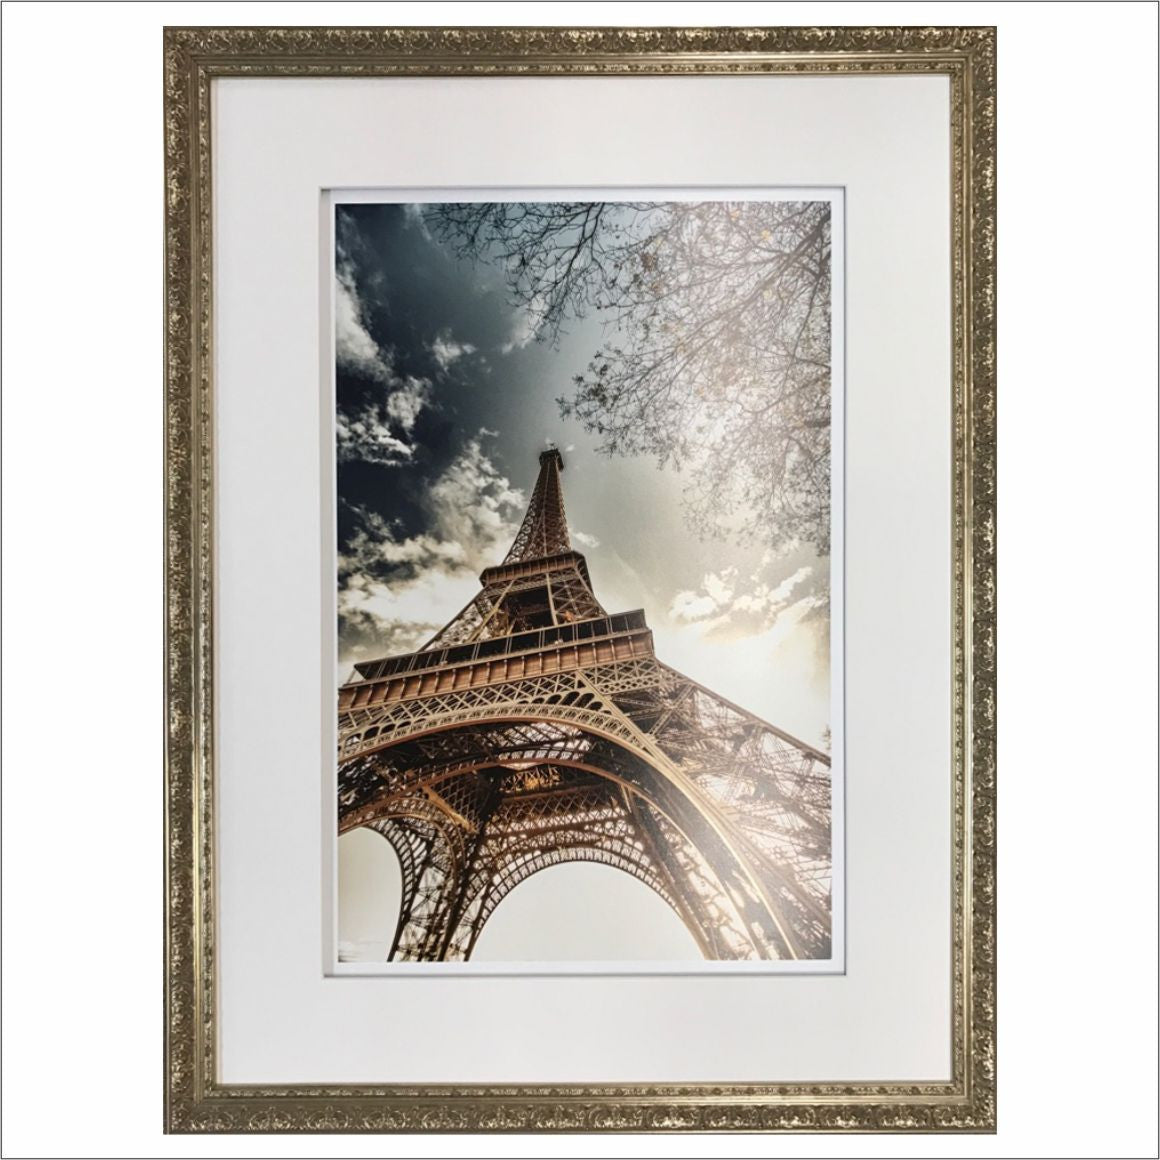 Buy paris eiffel tower at object framers perth for only 29500 paris eiffel tower object framers object framers picture framer perth jeuxipadfo Images